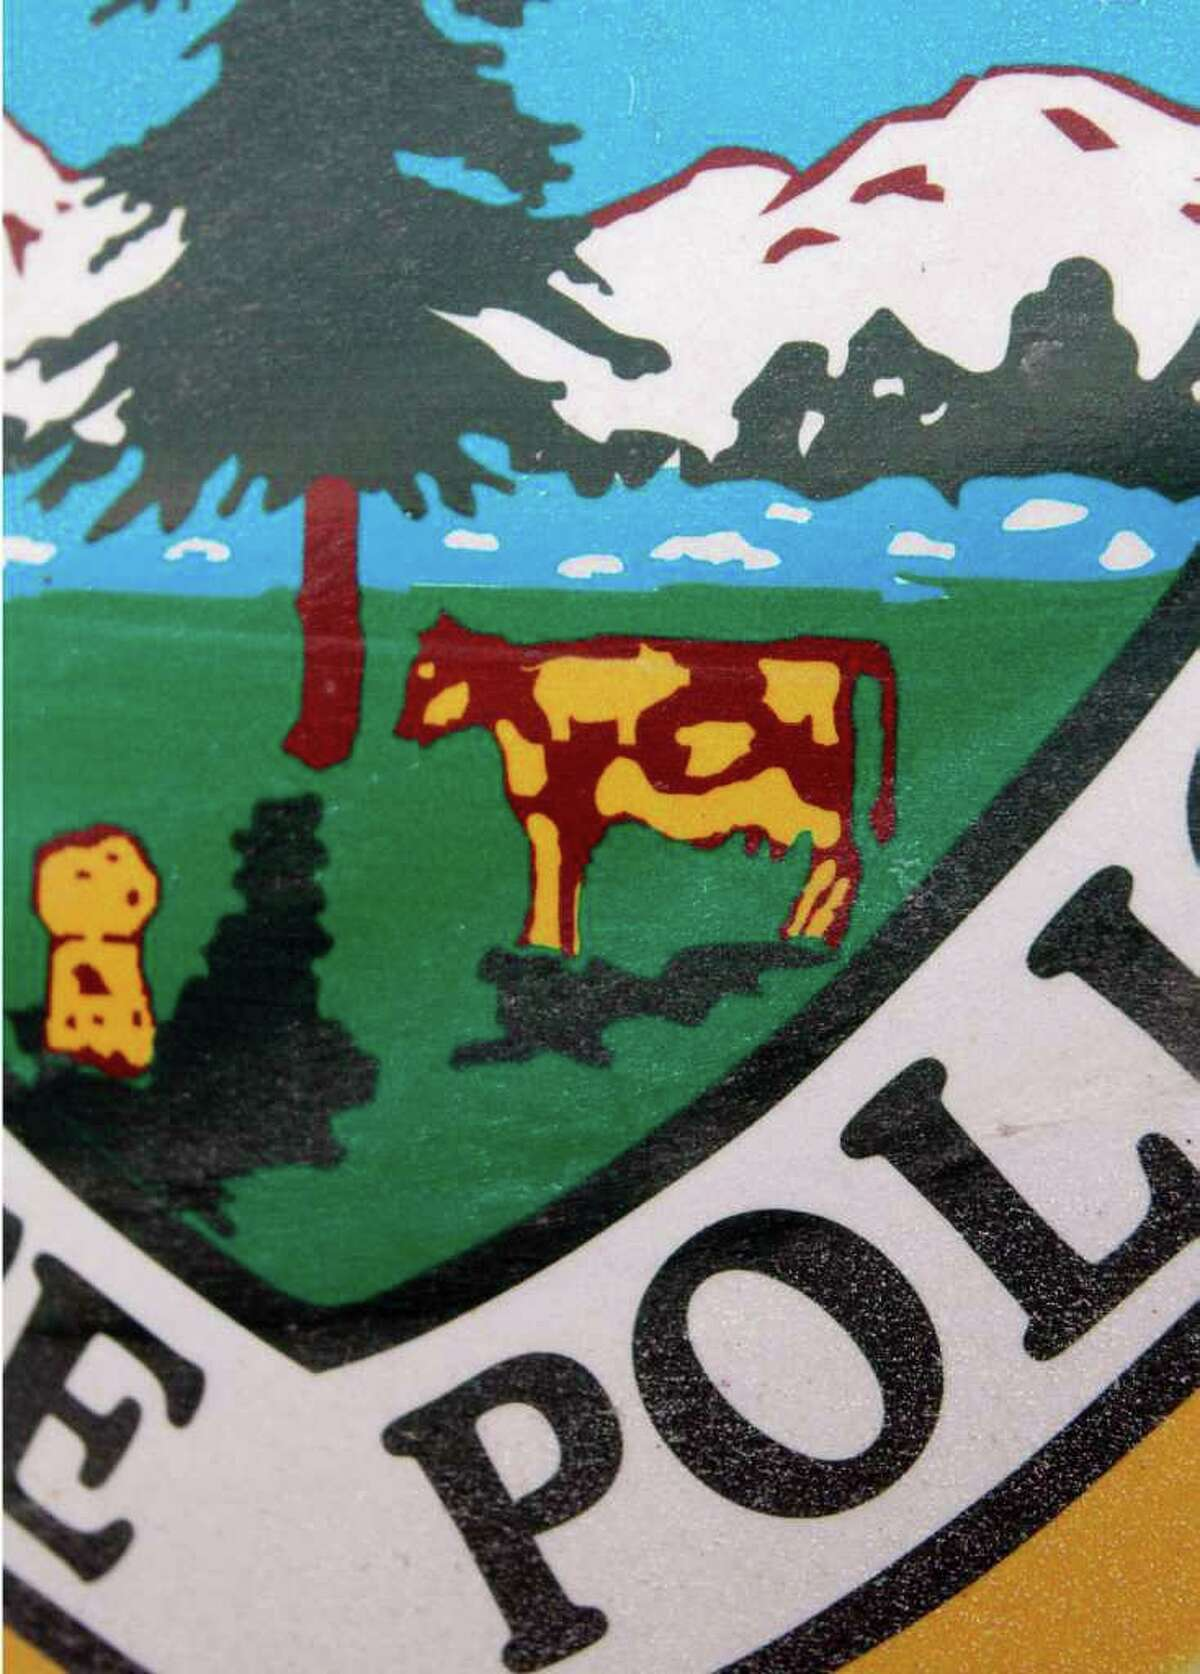 The state seal is seen on the side of a Vermont State Police cruiser Thursday, Feb. 2, 2012 in Middlesex, Vt. Some Vermont inmates have gotten the best of the state police by adding a pig to the state decal on their cruisers. One of the spots on the cow in the state crest has been changed to the shape of a pig, a derogatory term for police. The car decals are made by prisoners in St. Albans, who also make state stationary and license plates. (AP Photo/Toby Talbot)